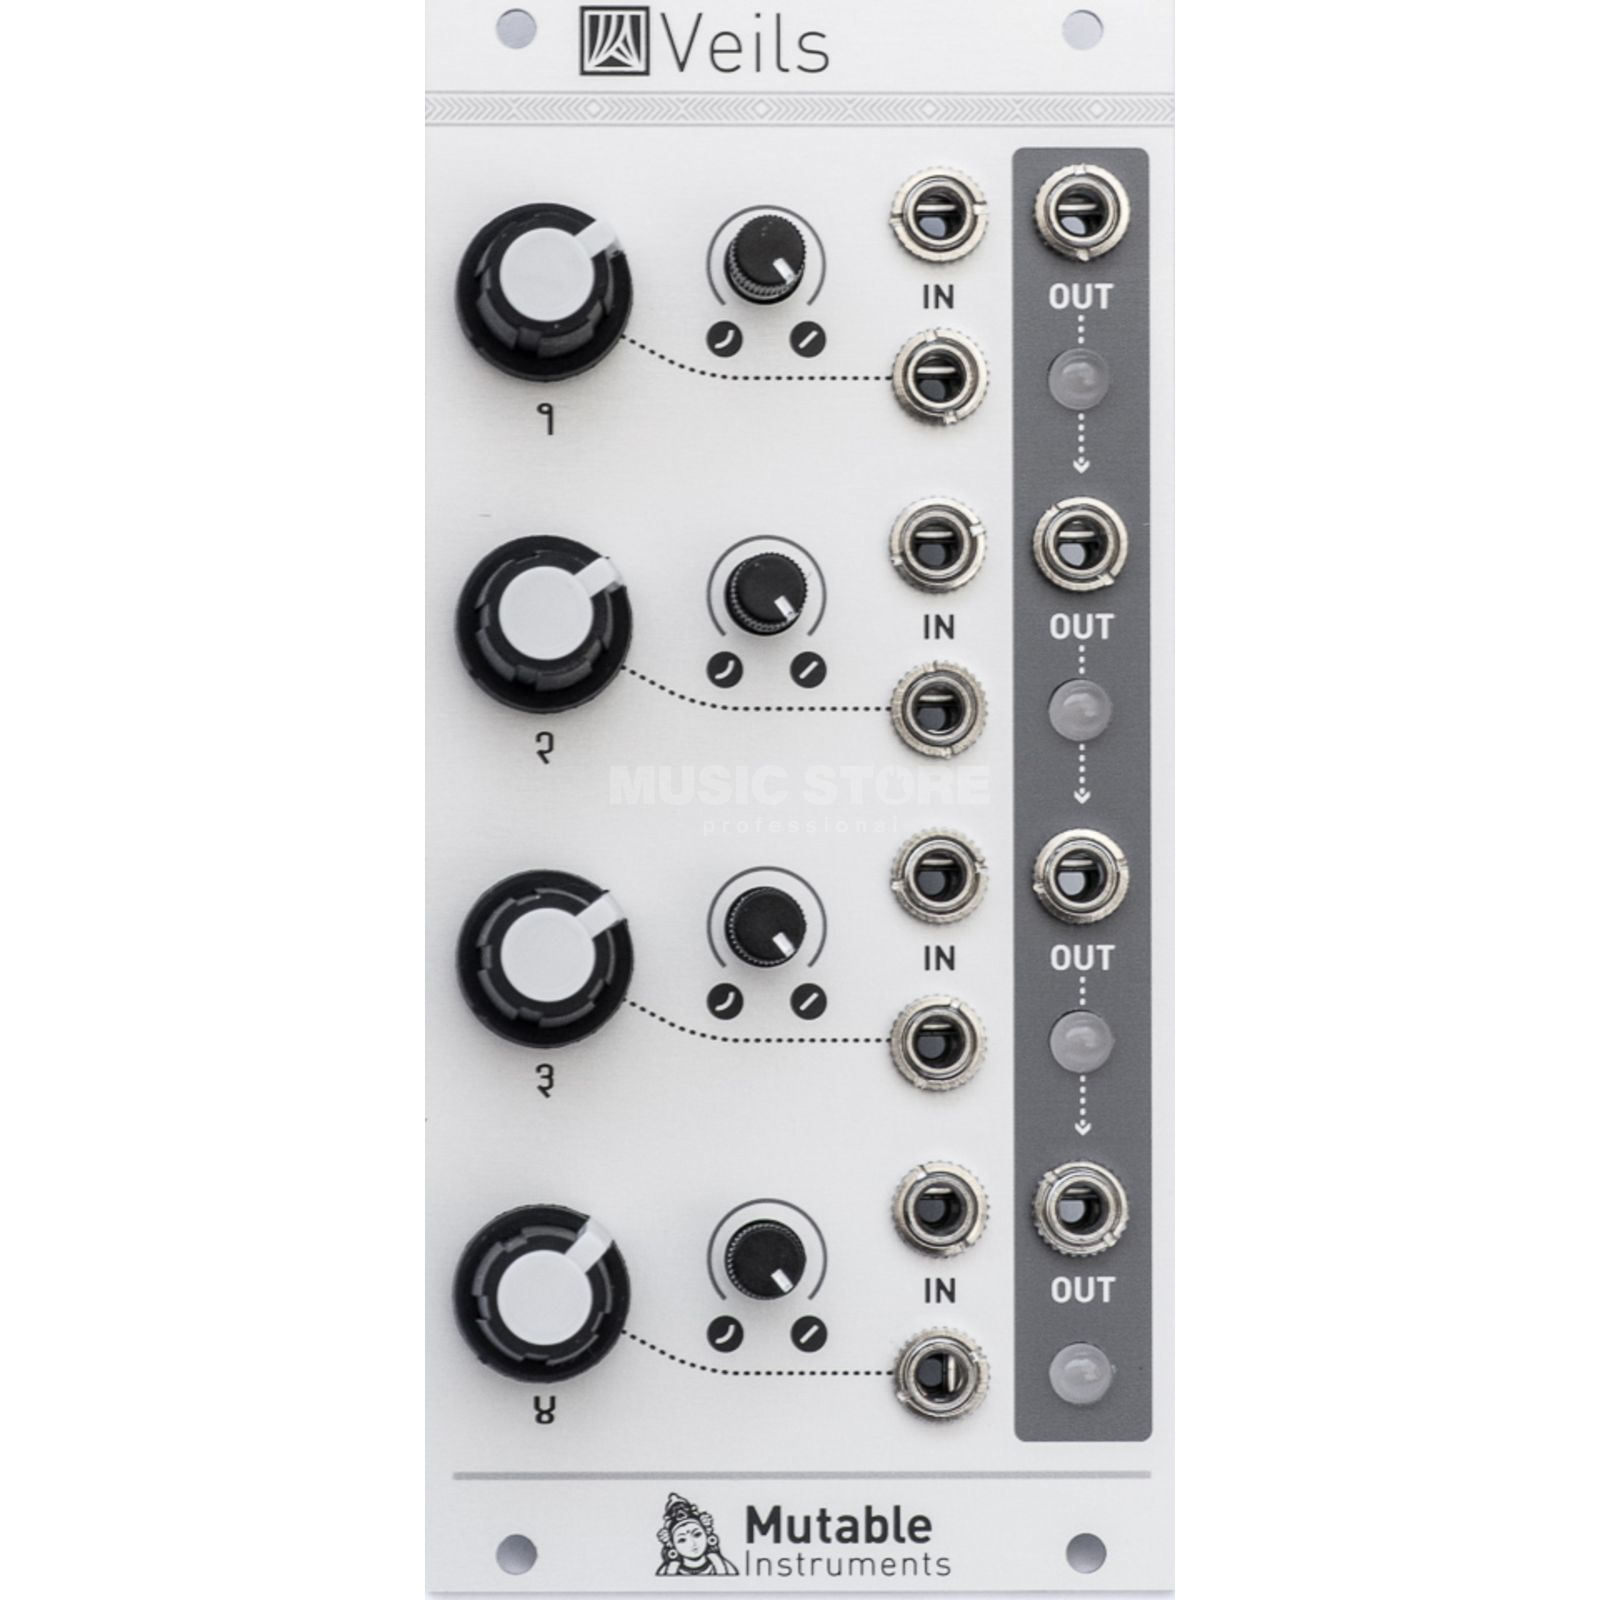 Mutable Instruments Veils Quad VCA Изображение товара